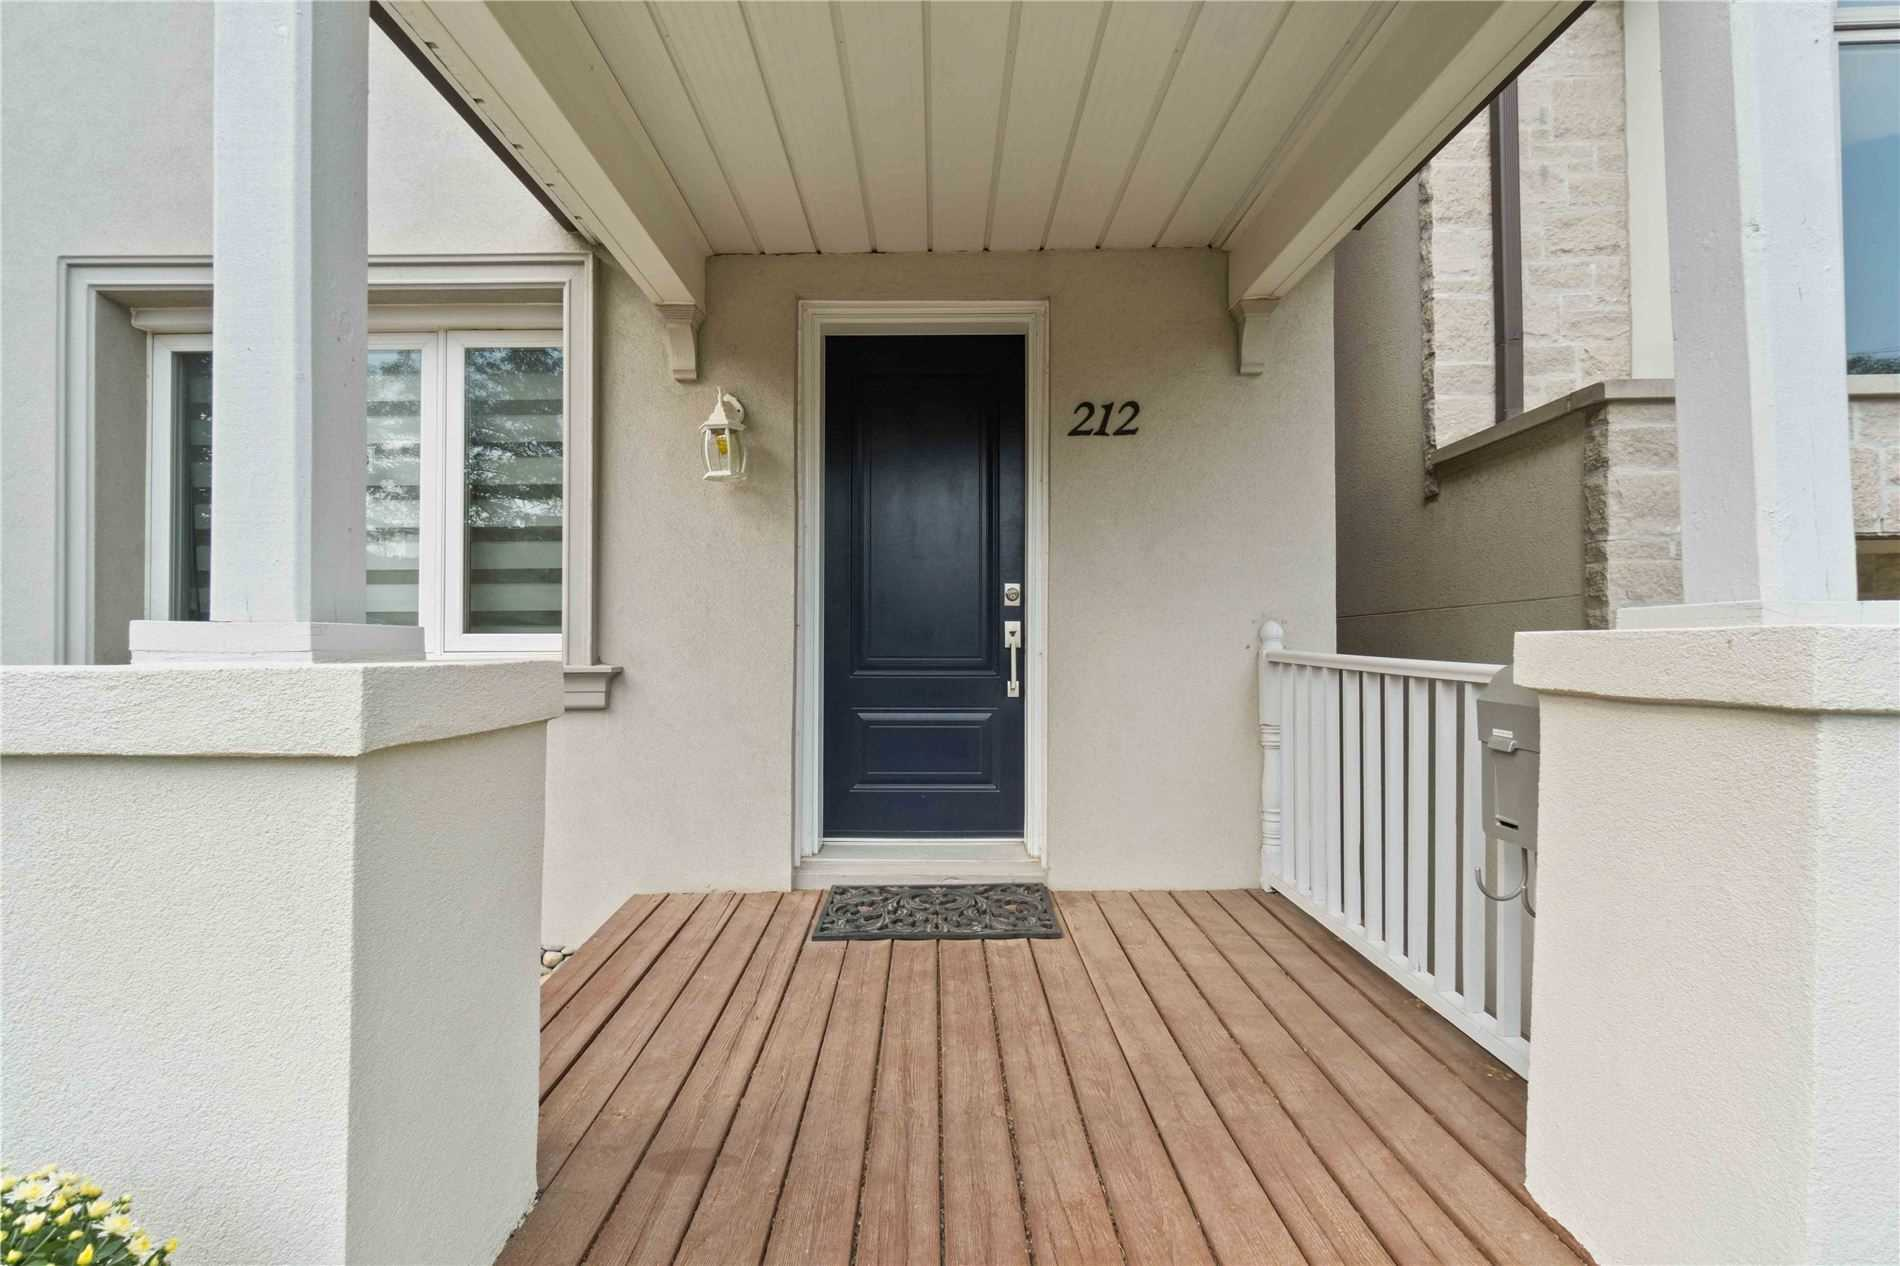 Detached house For Sale In Toronto - 212 Broadway Ave, Toronto, Ontario, Canada M4P1V9 , 3 Bedrooms Bedrooms, ,2 BathroomsBathrooms,Detached,For Sale,Broadway